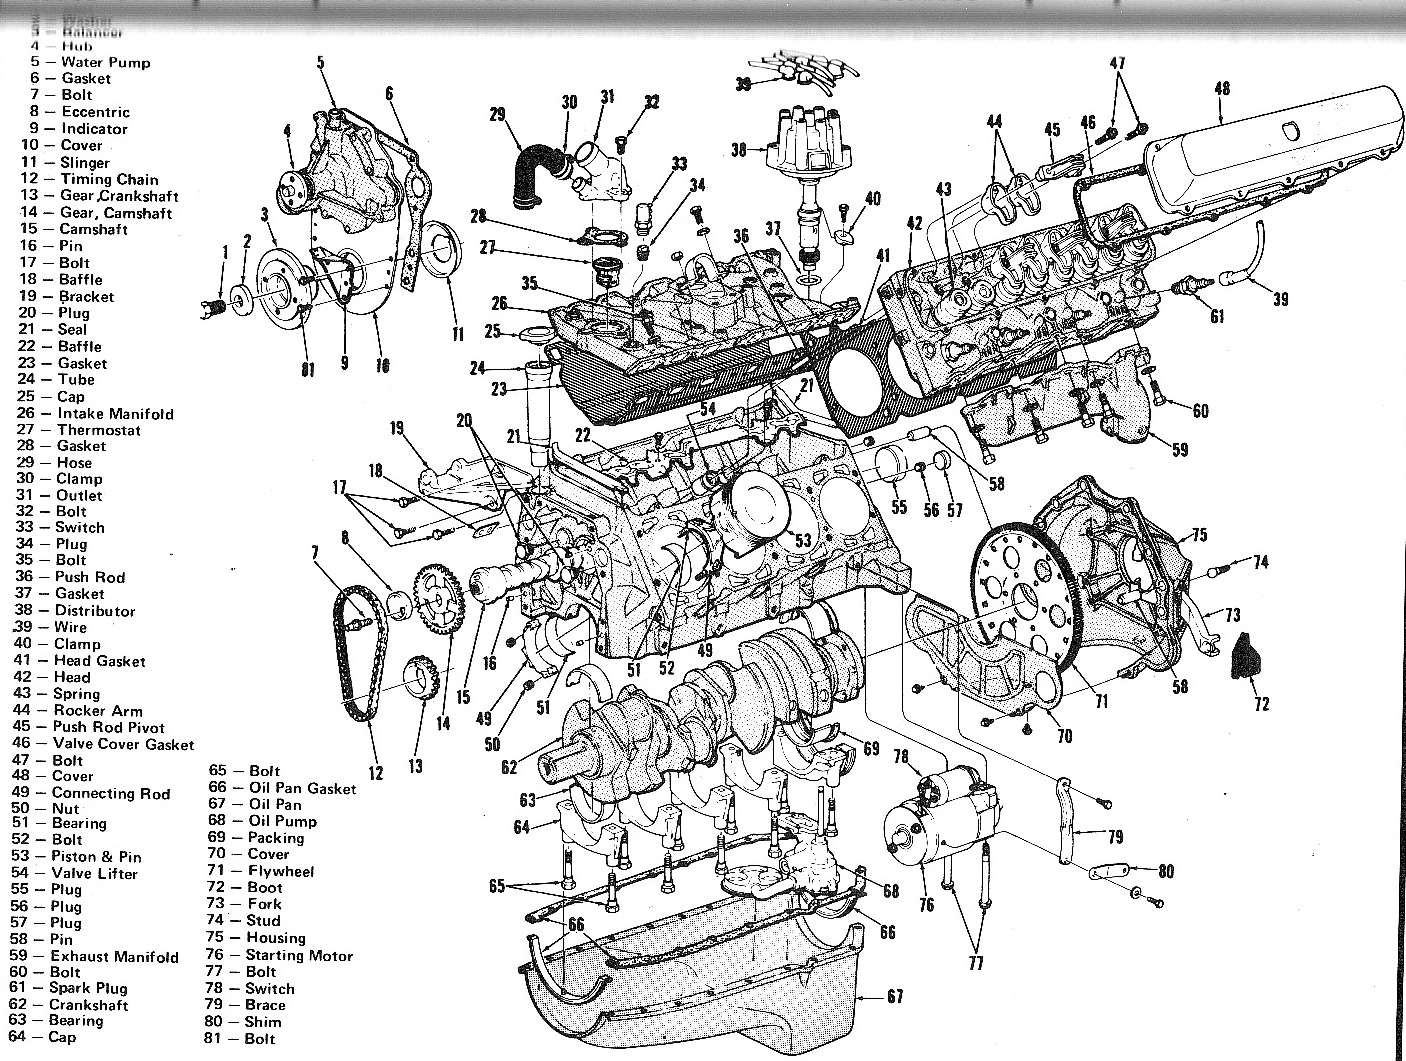 how can get full engine diagrams grabcad questions rh grabcad com v8 engine exploded diagram corvair engine exploded diagram